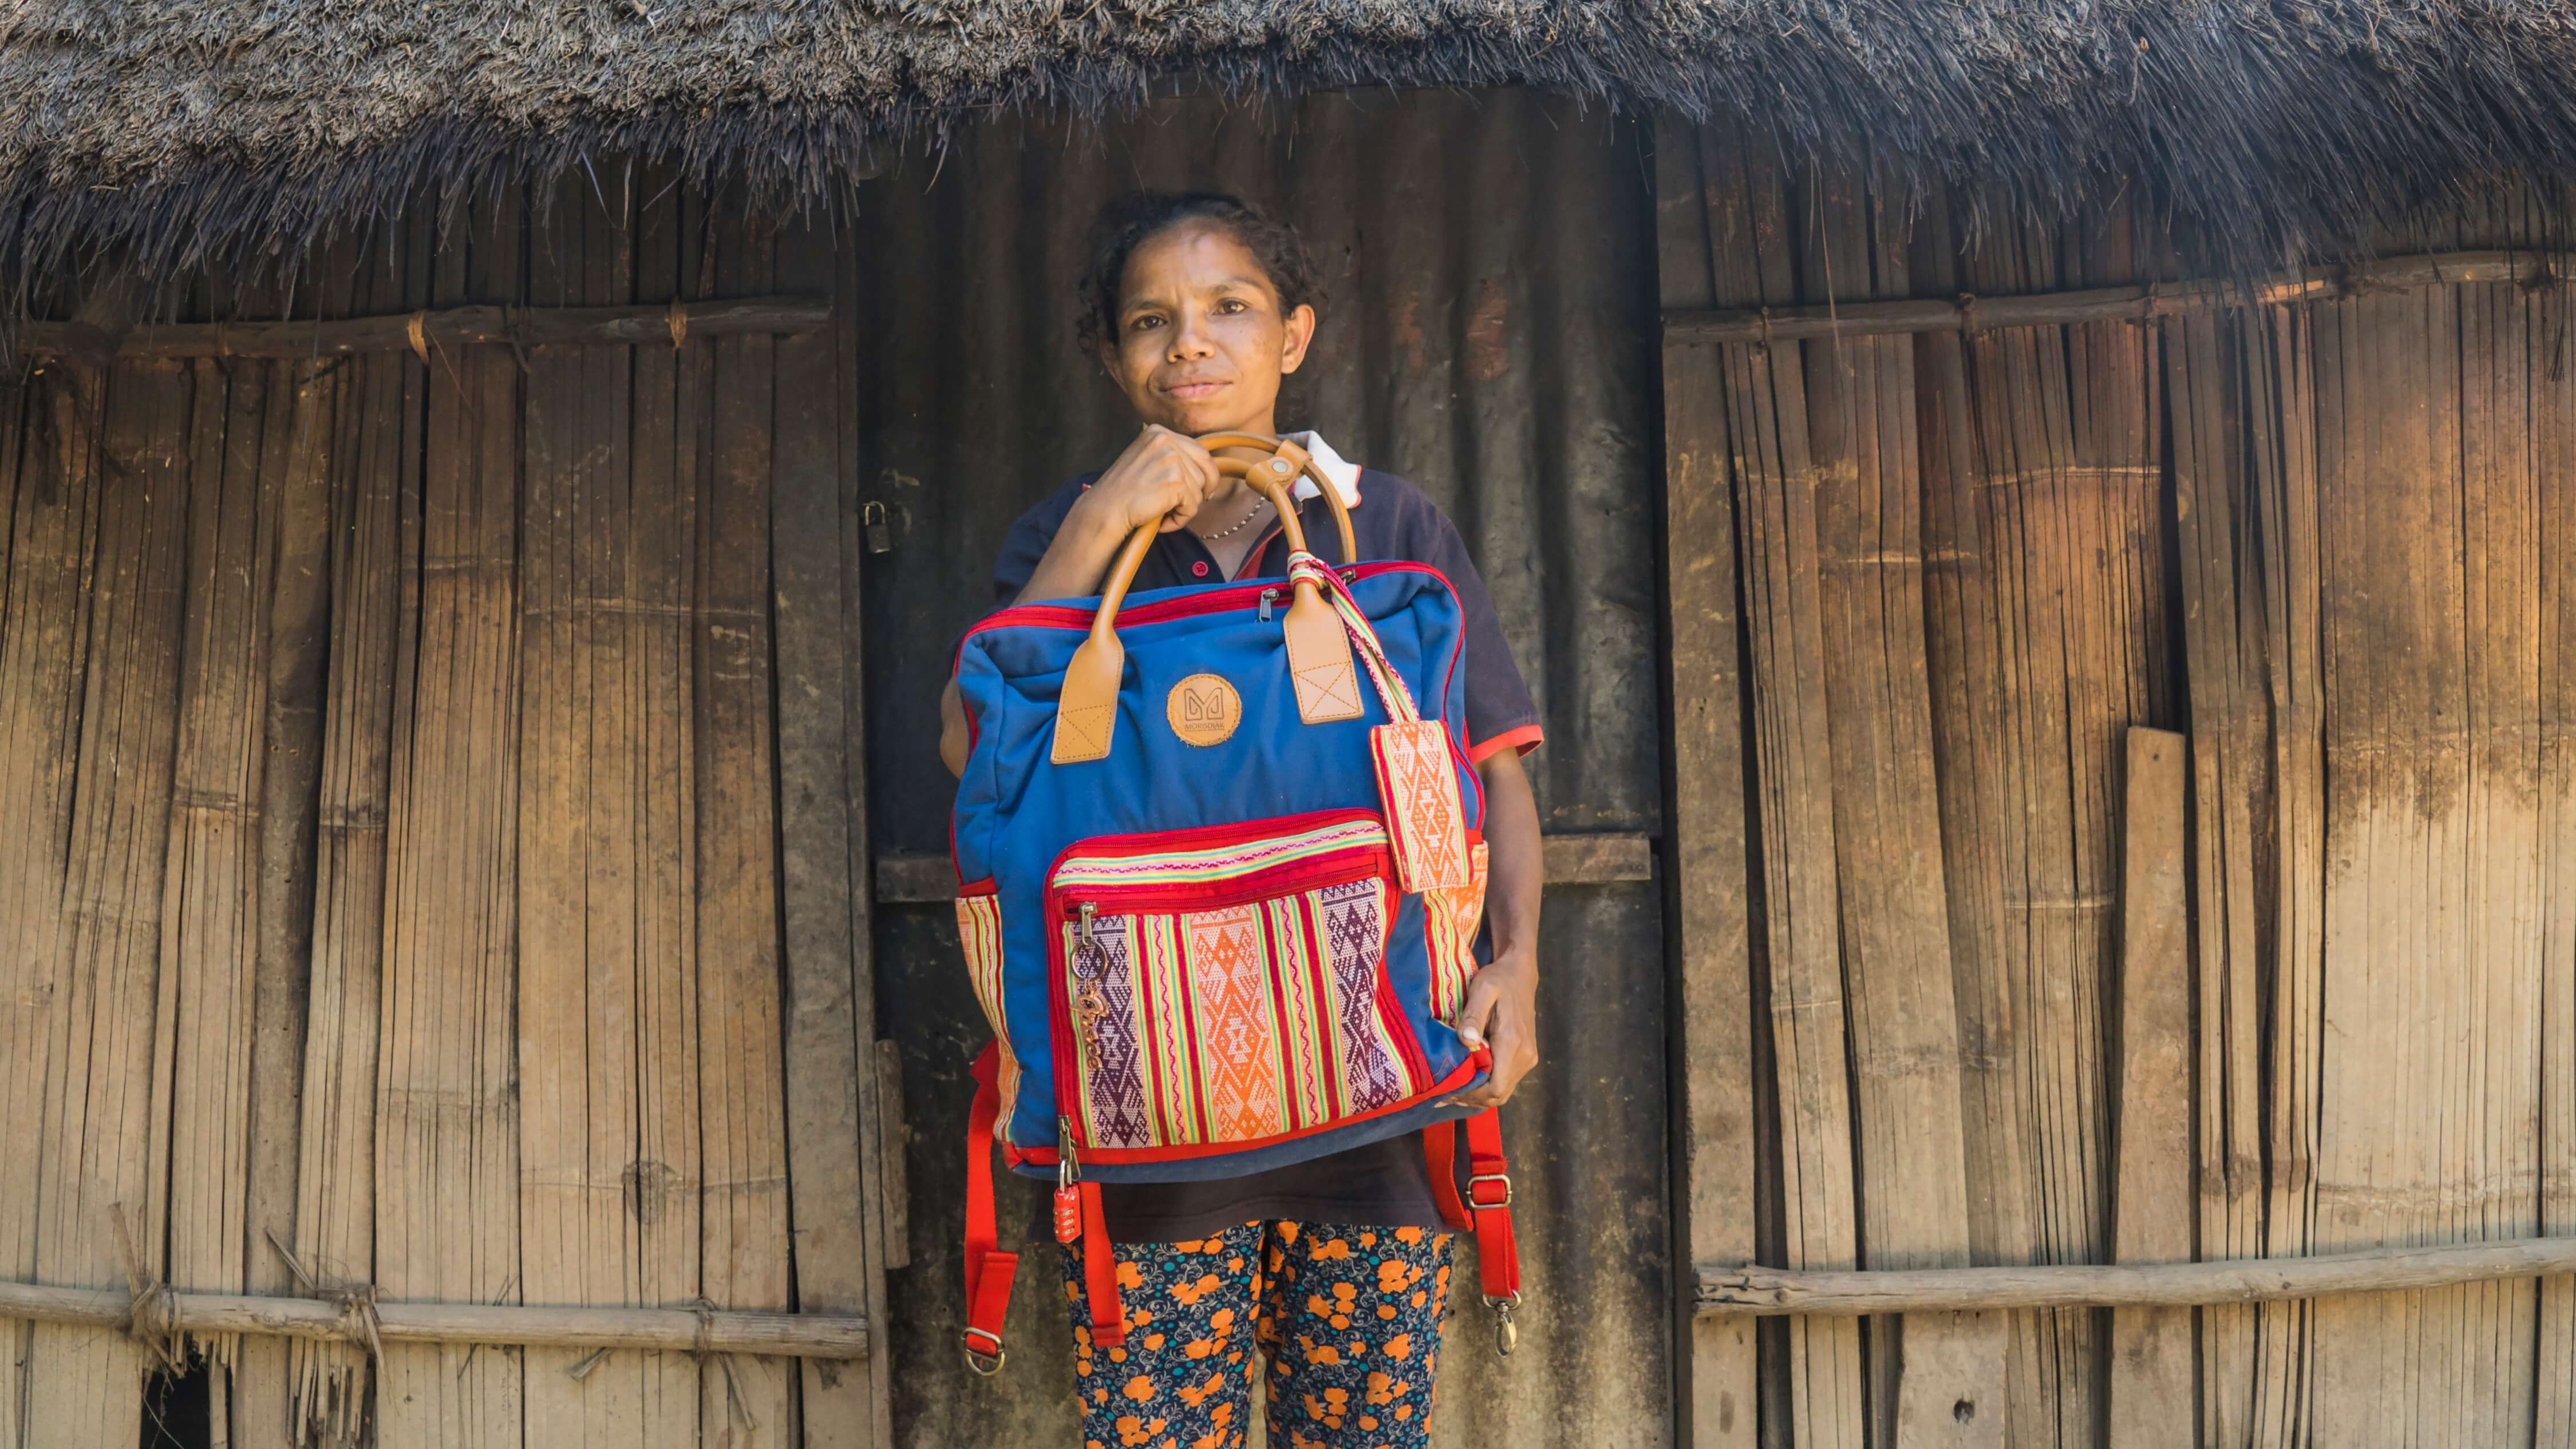 Amelia holds a tenun backpack from a Yogyakarta-based brand that partners with Lakoat.Kujawas to incorporate tenun into their pieces. The tenun is by Amelia.